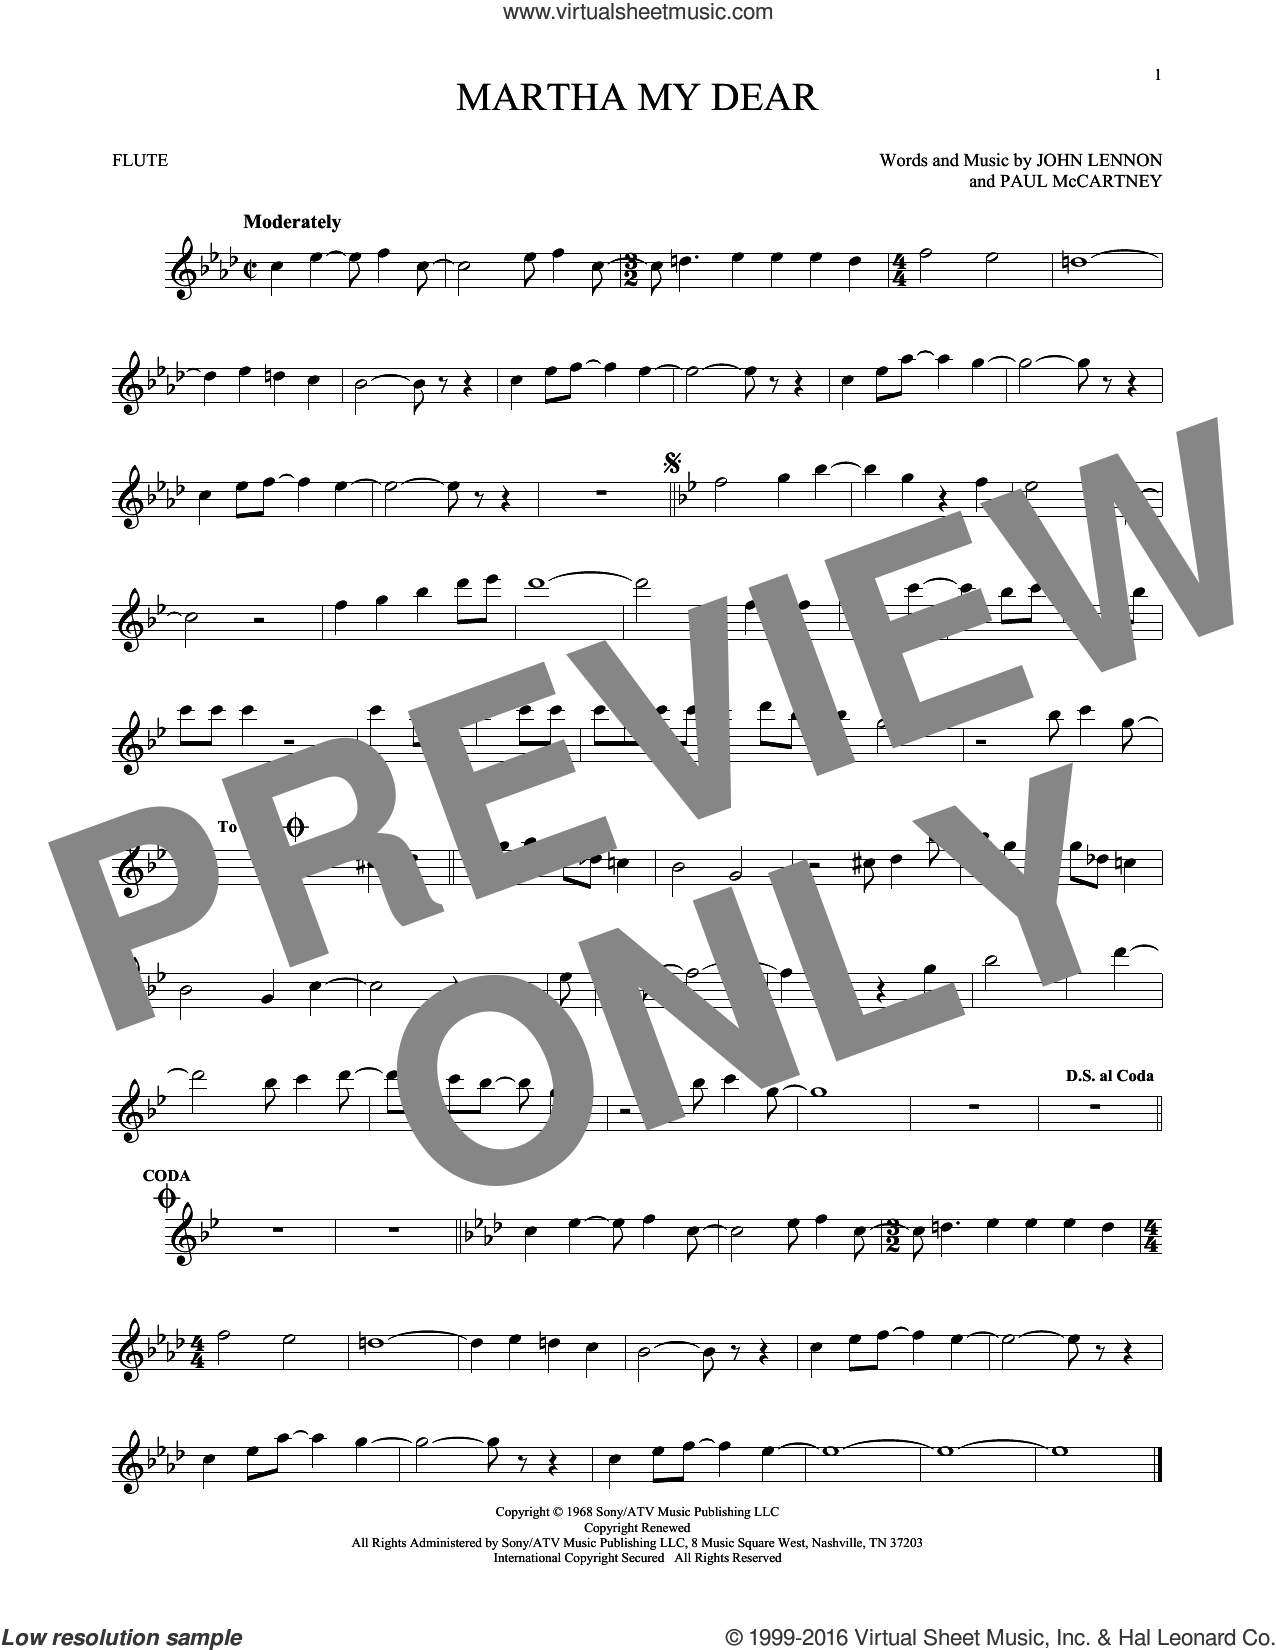 Martha My Dear sheet music for flute solo by The Beatles, John Lennon and Paul McCartney, intermediate skill level